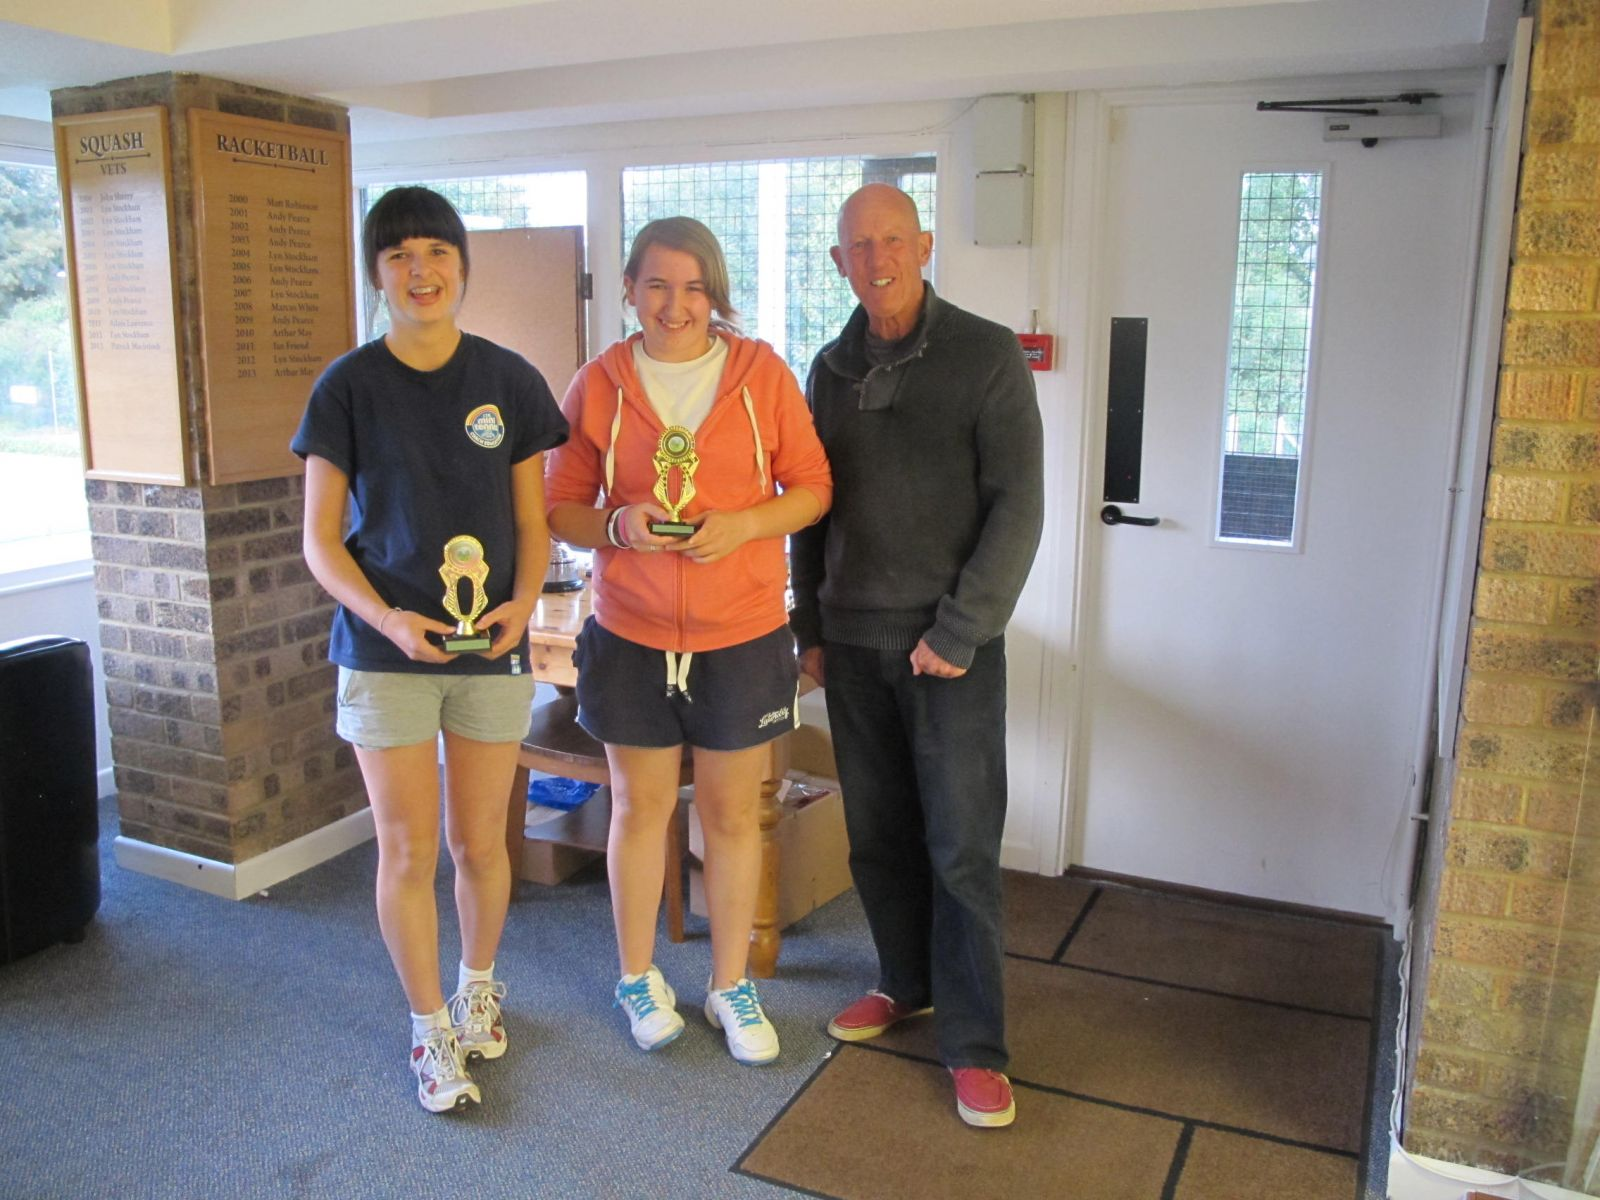 Ladies' Doubles runners-up Ellie Chambers & Kayleigh Budge